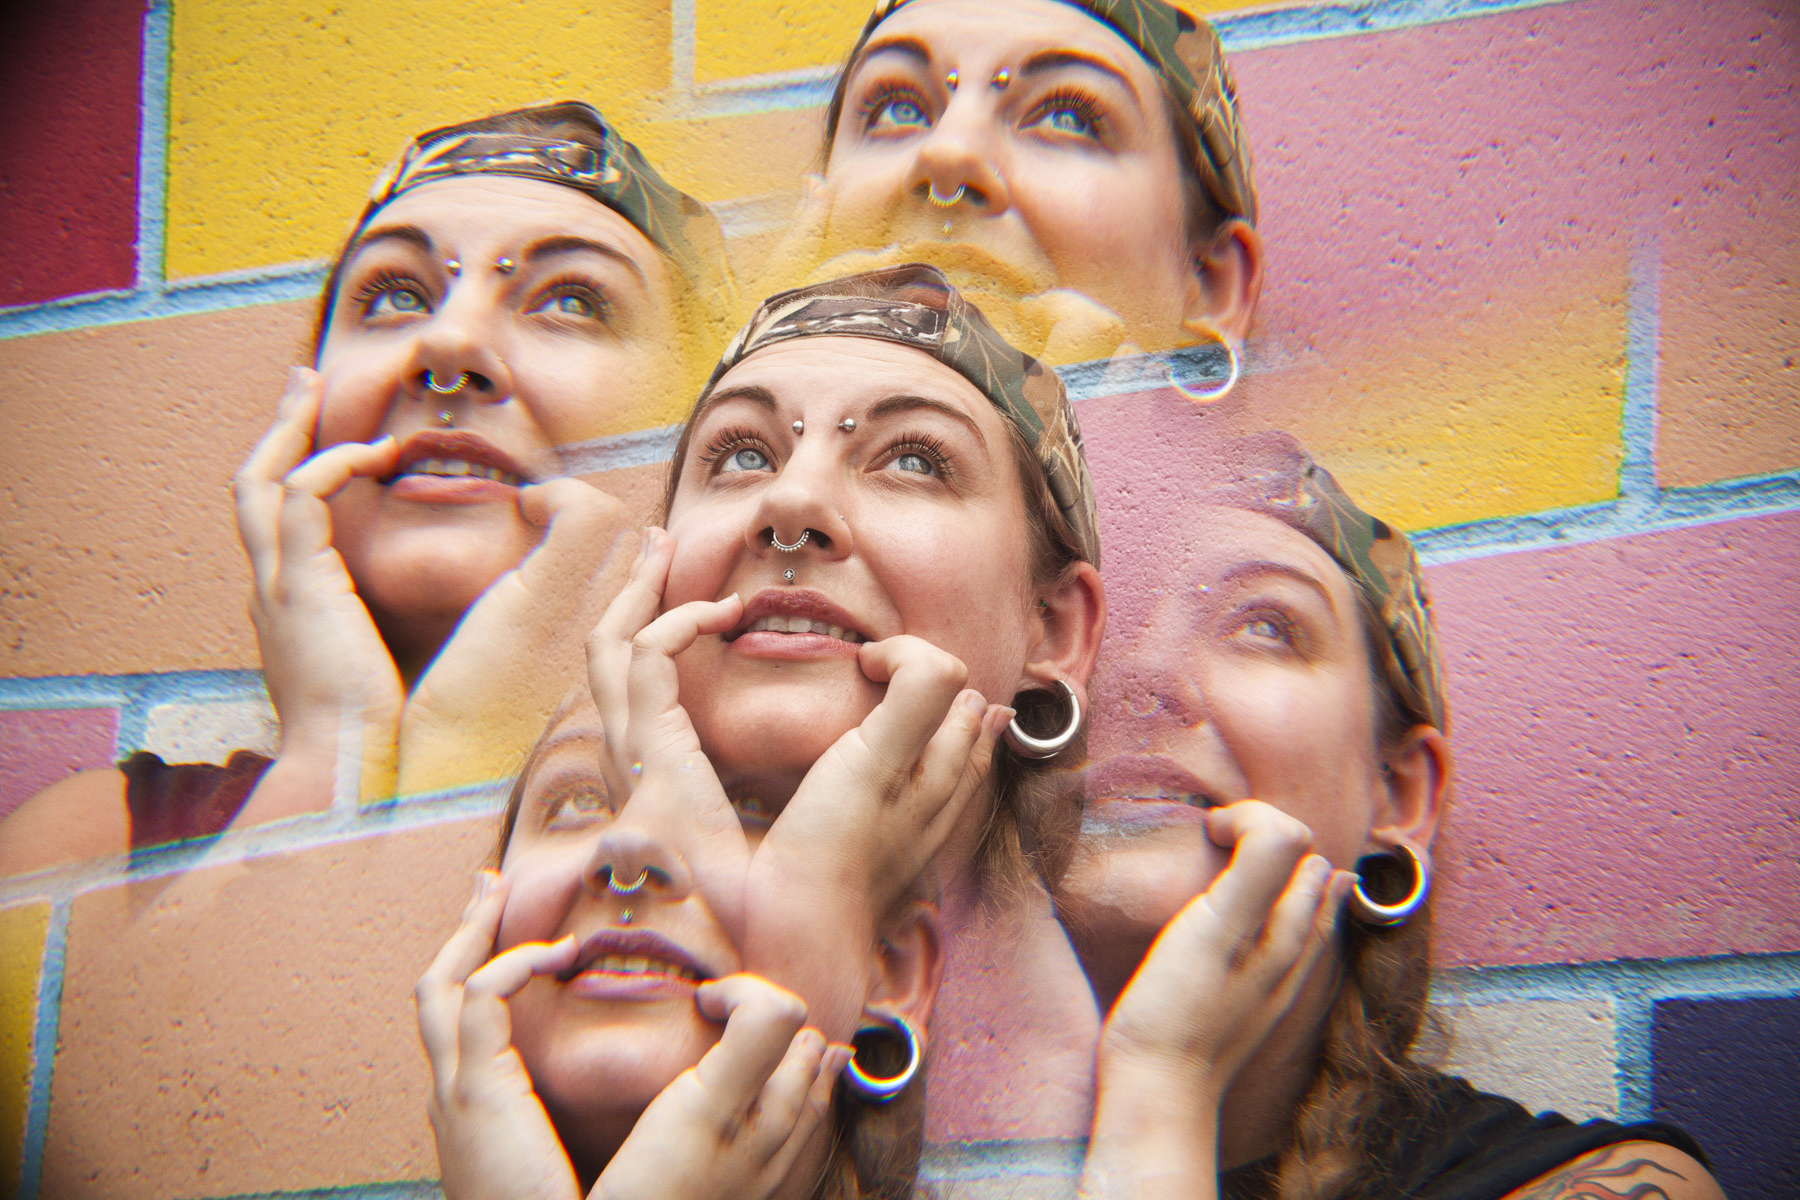 A kaleidoscope image of a woman holding her chin in her hands.